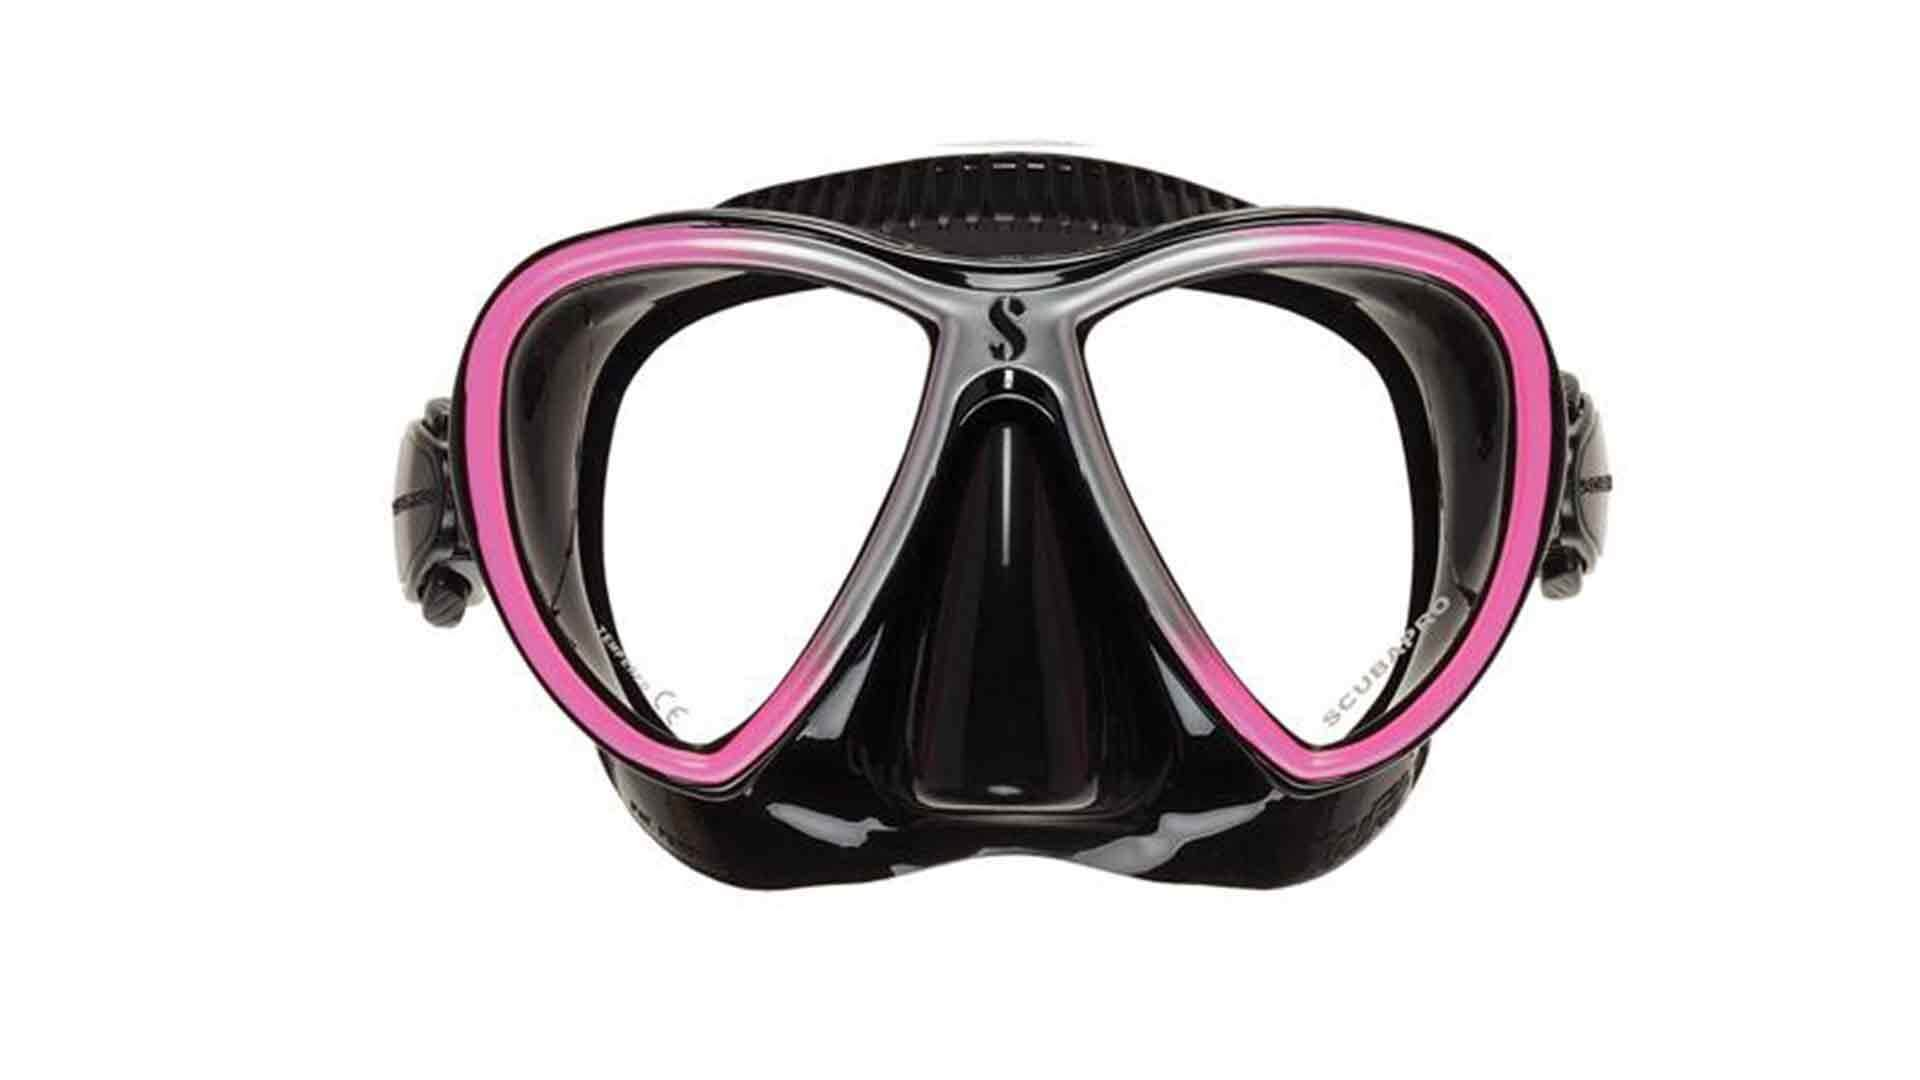 How to Prepare a New Scuba Mask